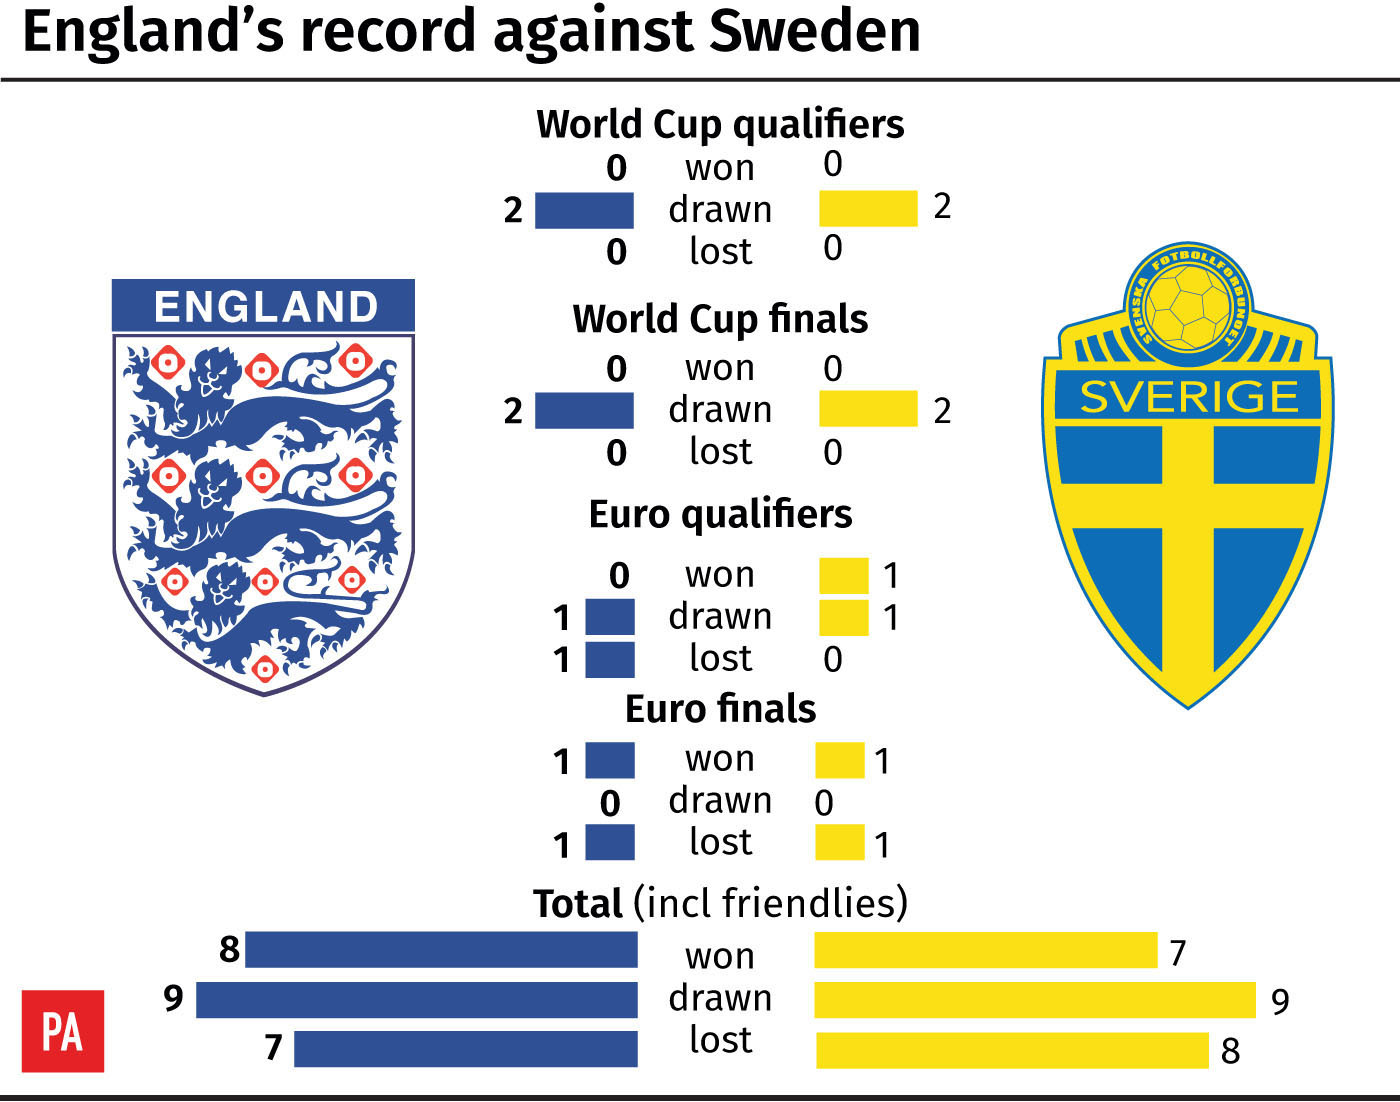 England have a poor record against Sweden in competitive games